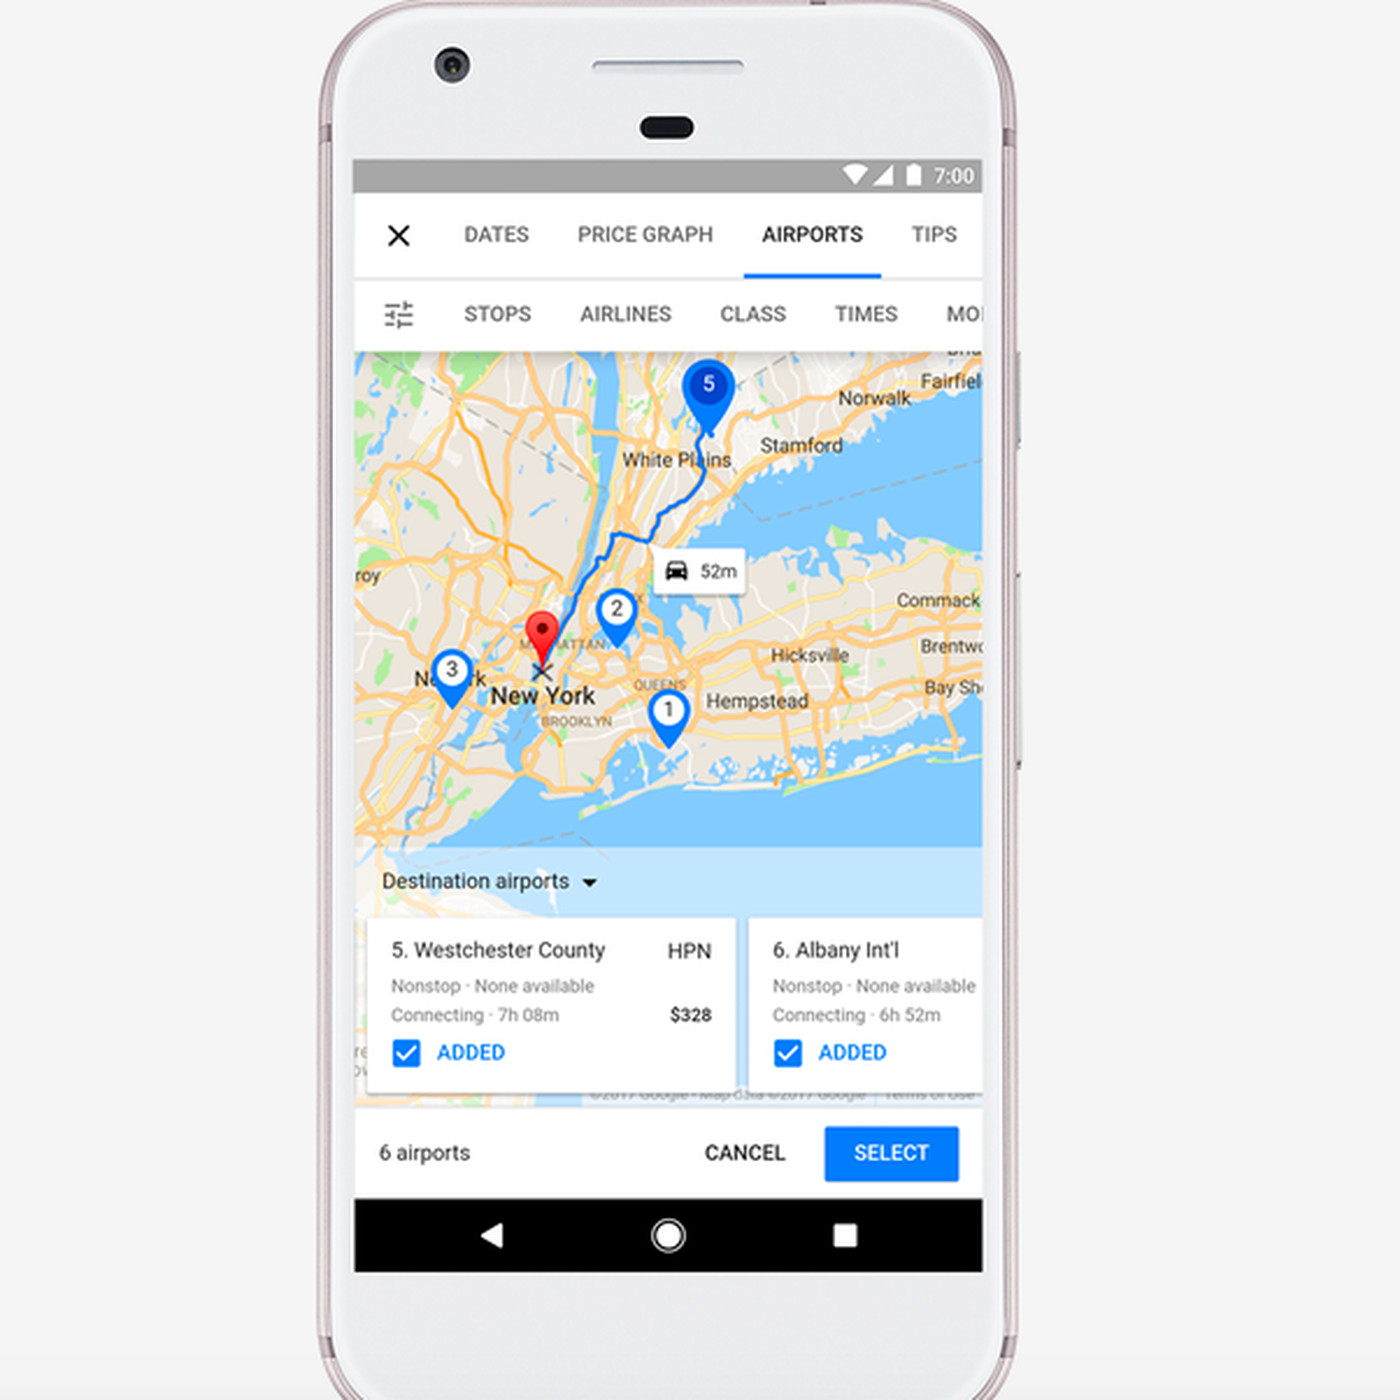 Google now offers more money saving options when you're trip ... on google hotel, google restaurants, google jewelry, google training, google salary, google tour, google airlines, google dining, google clothing, google tips,